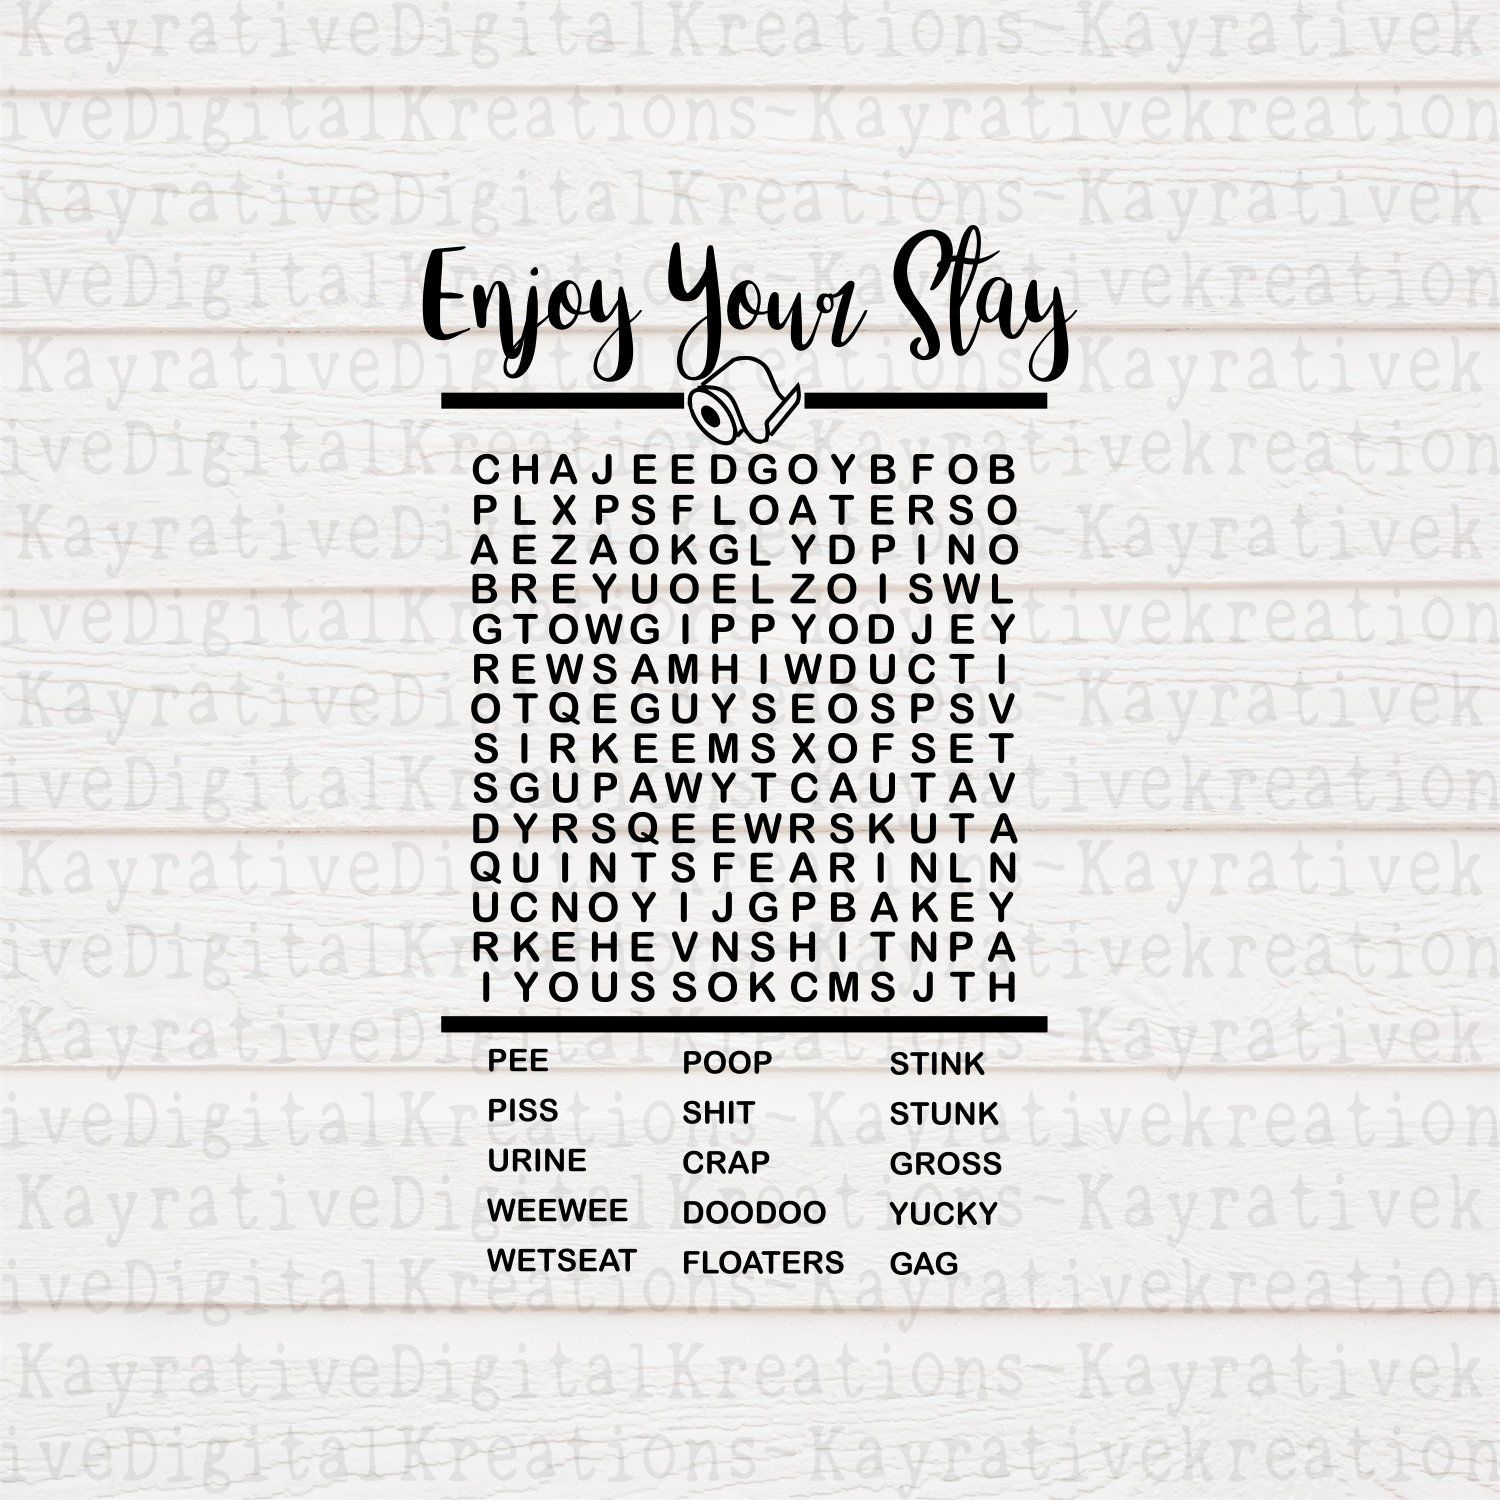 Bathroom Word Search Svg - Funny Bathroom Decor - Enjoy Your